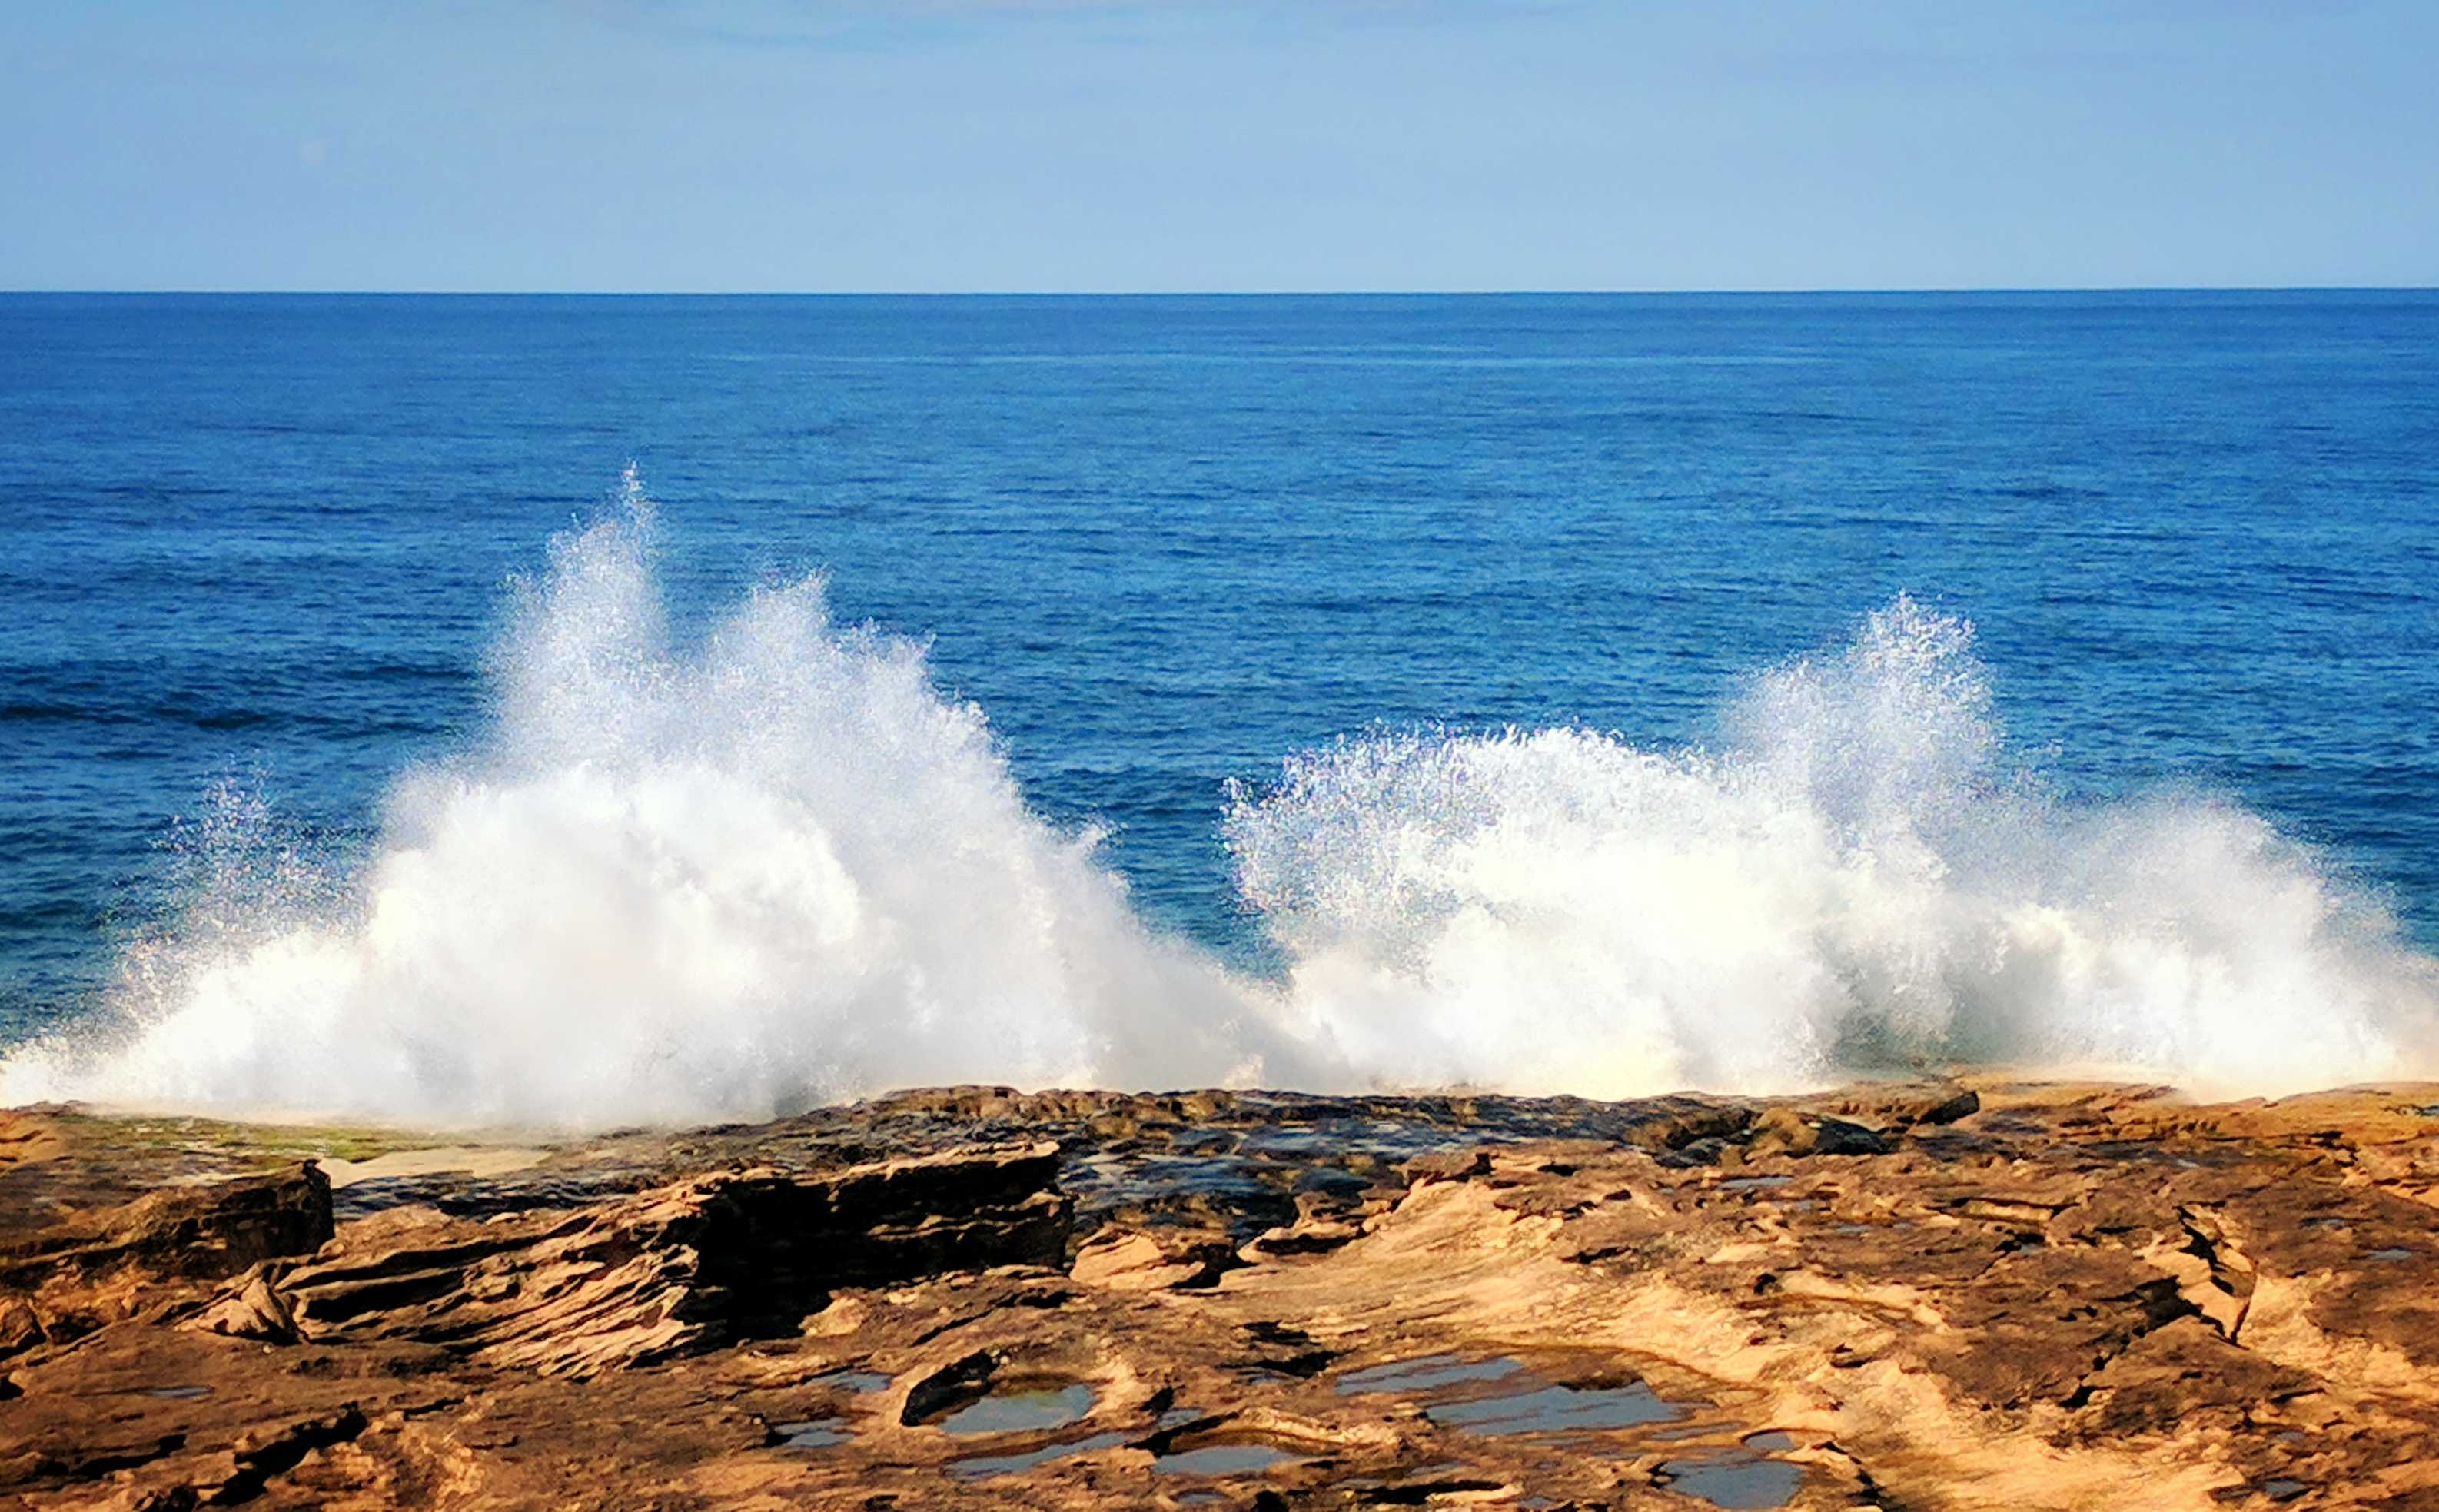 Ocean wave hits the rocks of South Curl Curl (Sydney)